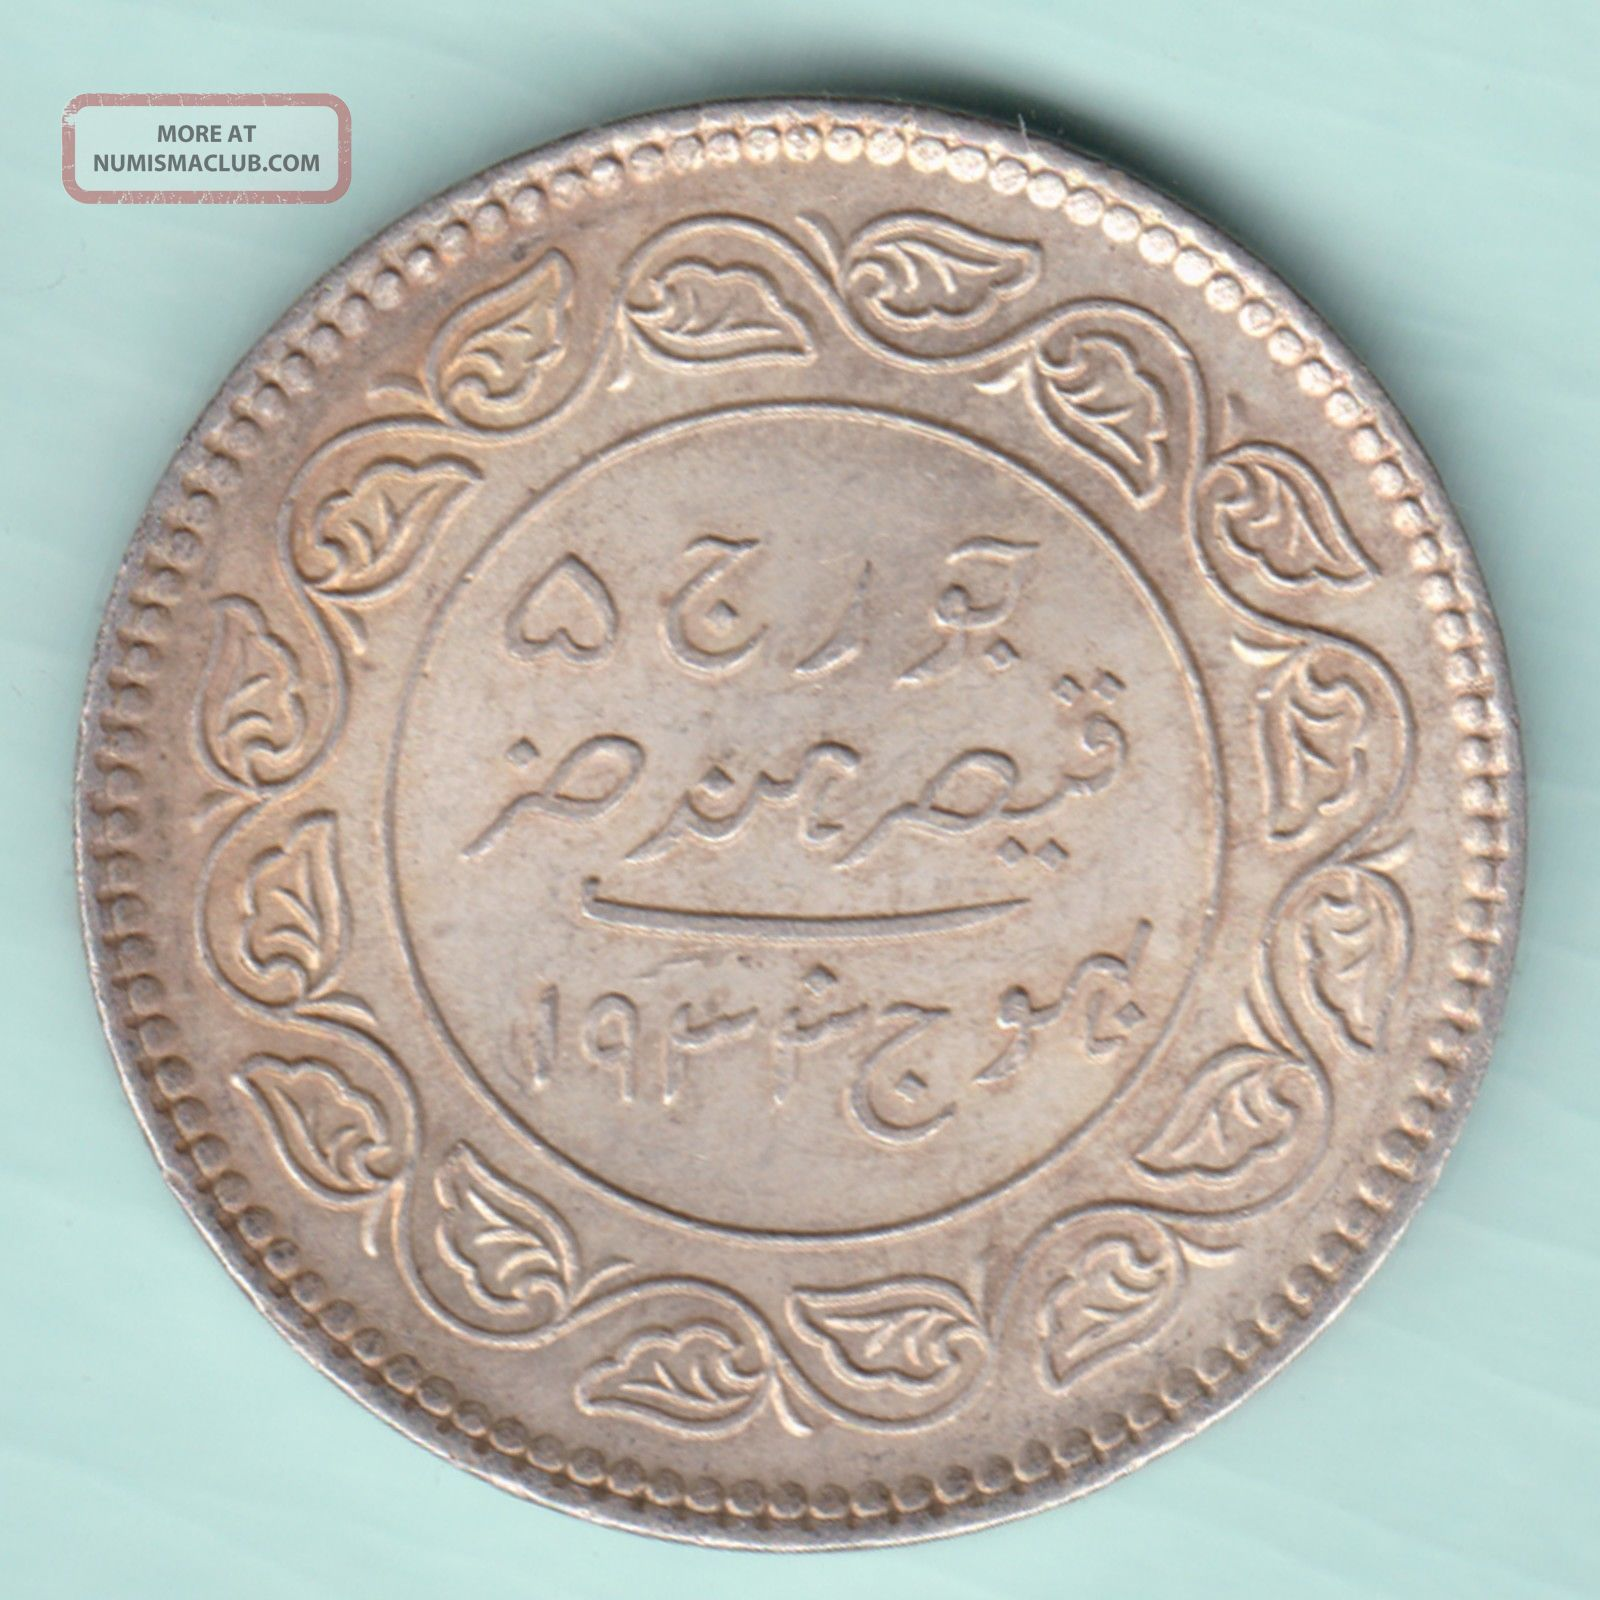 Kutch Bhuj State - 1933 - King George V - Khengarji - Five Kori - Rare Silver India photo